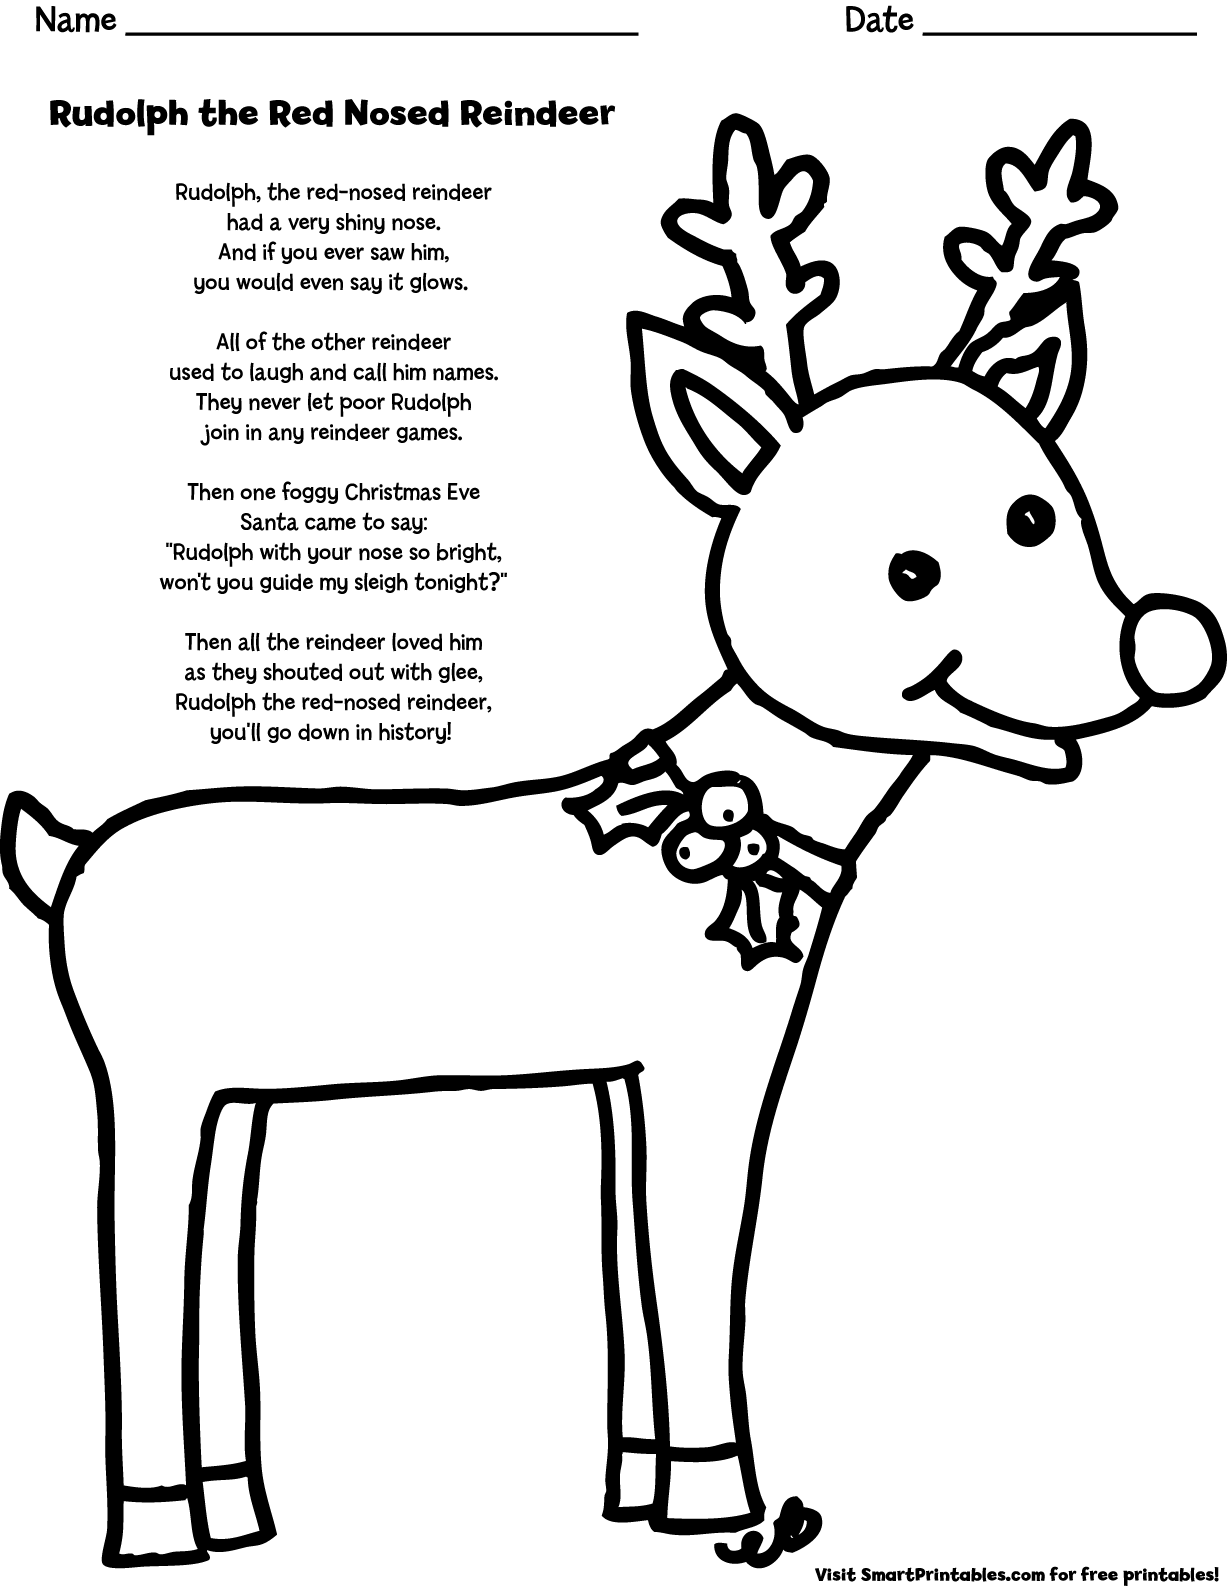 photo about Rudolph the Red Nosed Reindeer Lyrics Printable known as rudolph the pink nosed reindeer lyrics Carol Brookes Clever